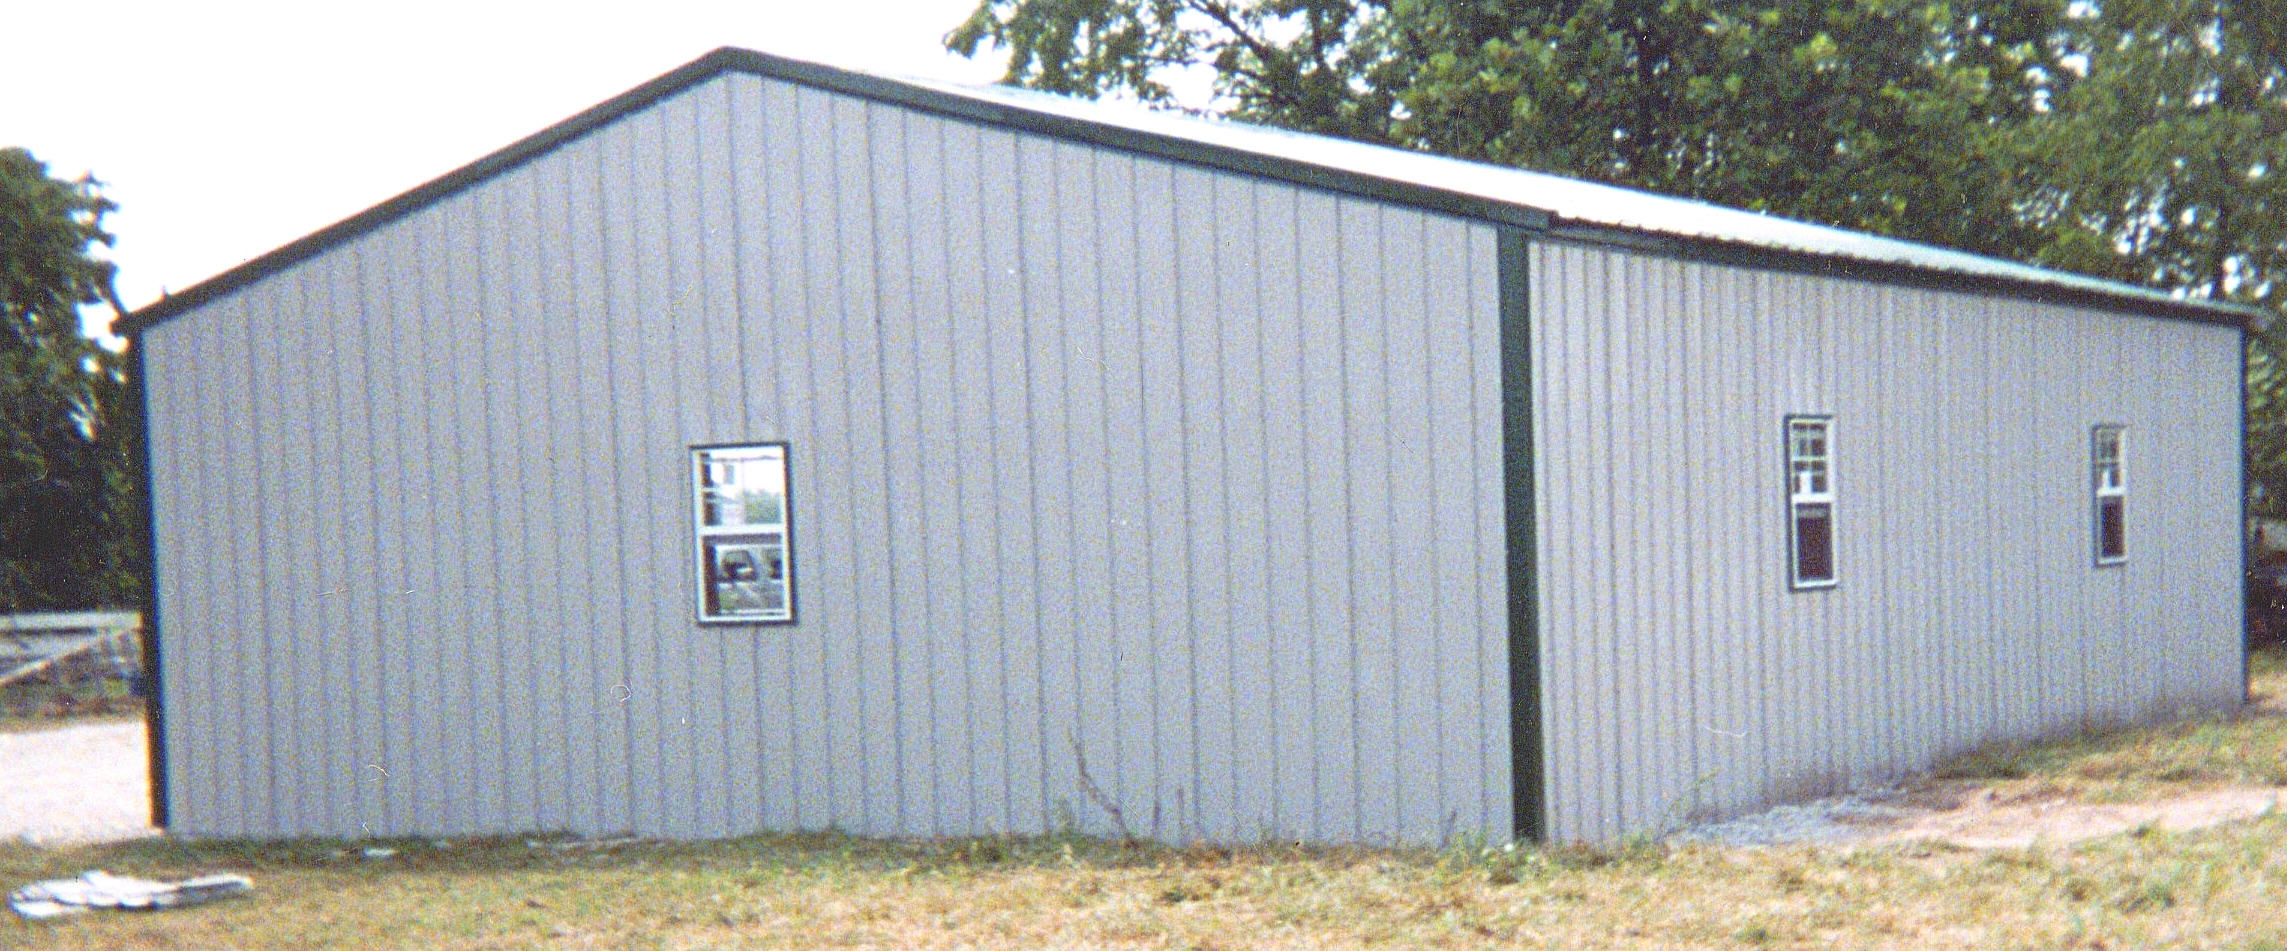 Free 30x50 pole barn plans joy studio design gallery for Free pole barn plans